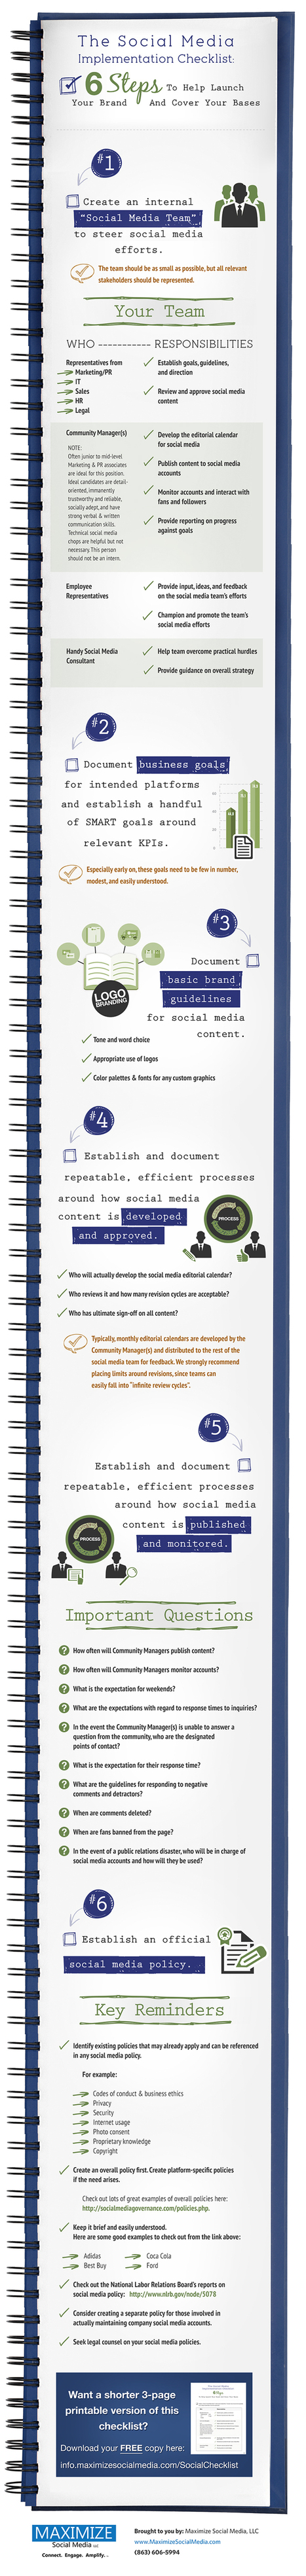 Social Media Implementation Checklist | Health Care Business | Scoop.it